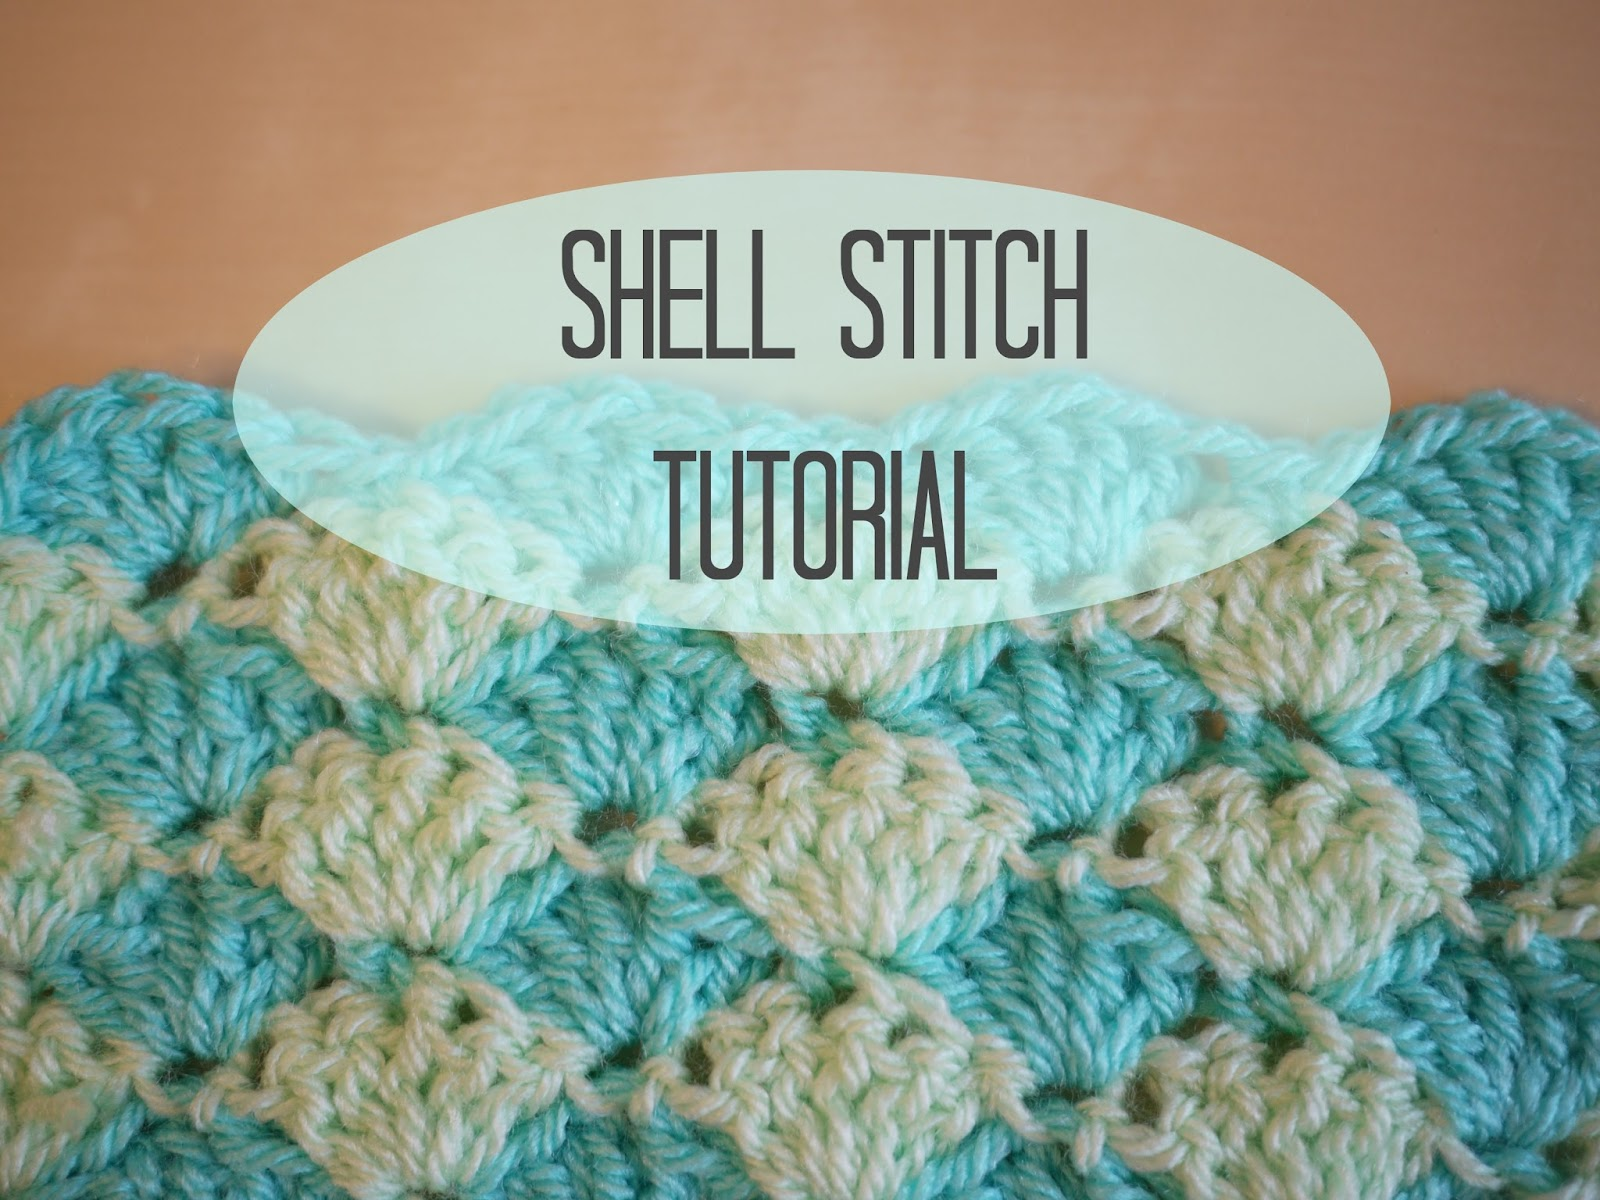 Crochet shell stitch tutorial - Bella Coco by Sarah-Jayne